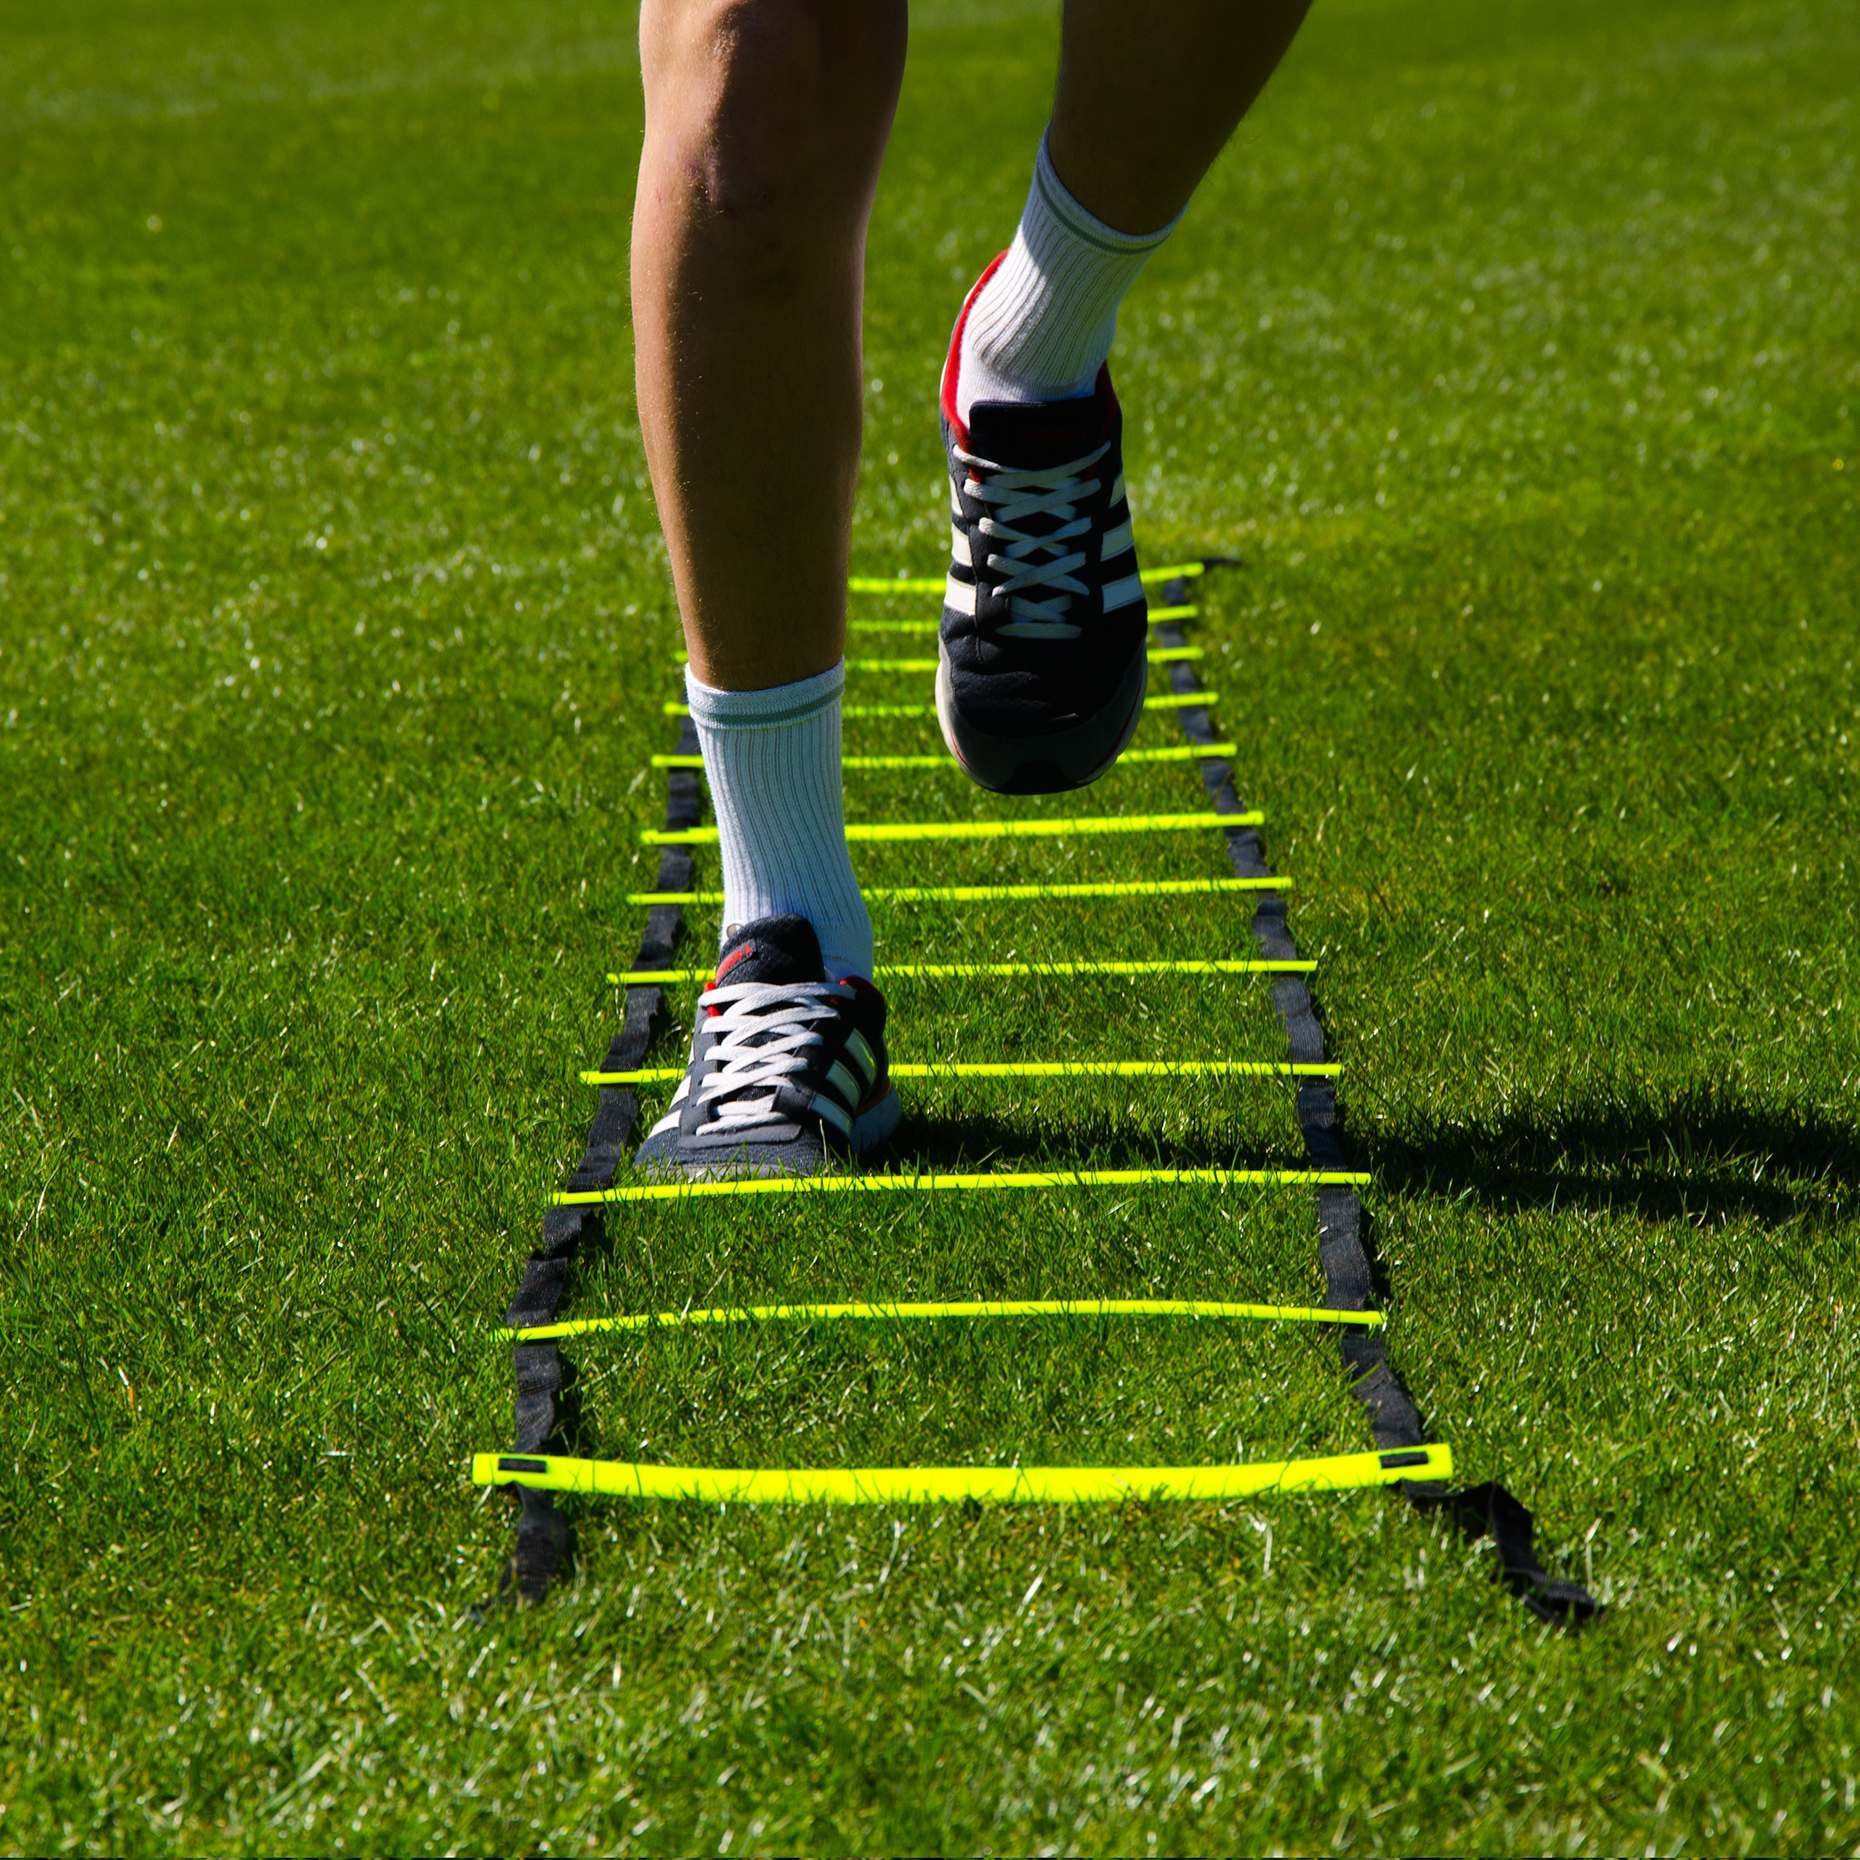 Speed & Agility Soccer Training Ladder